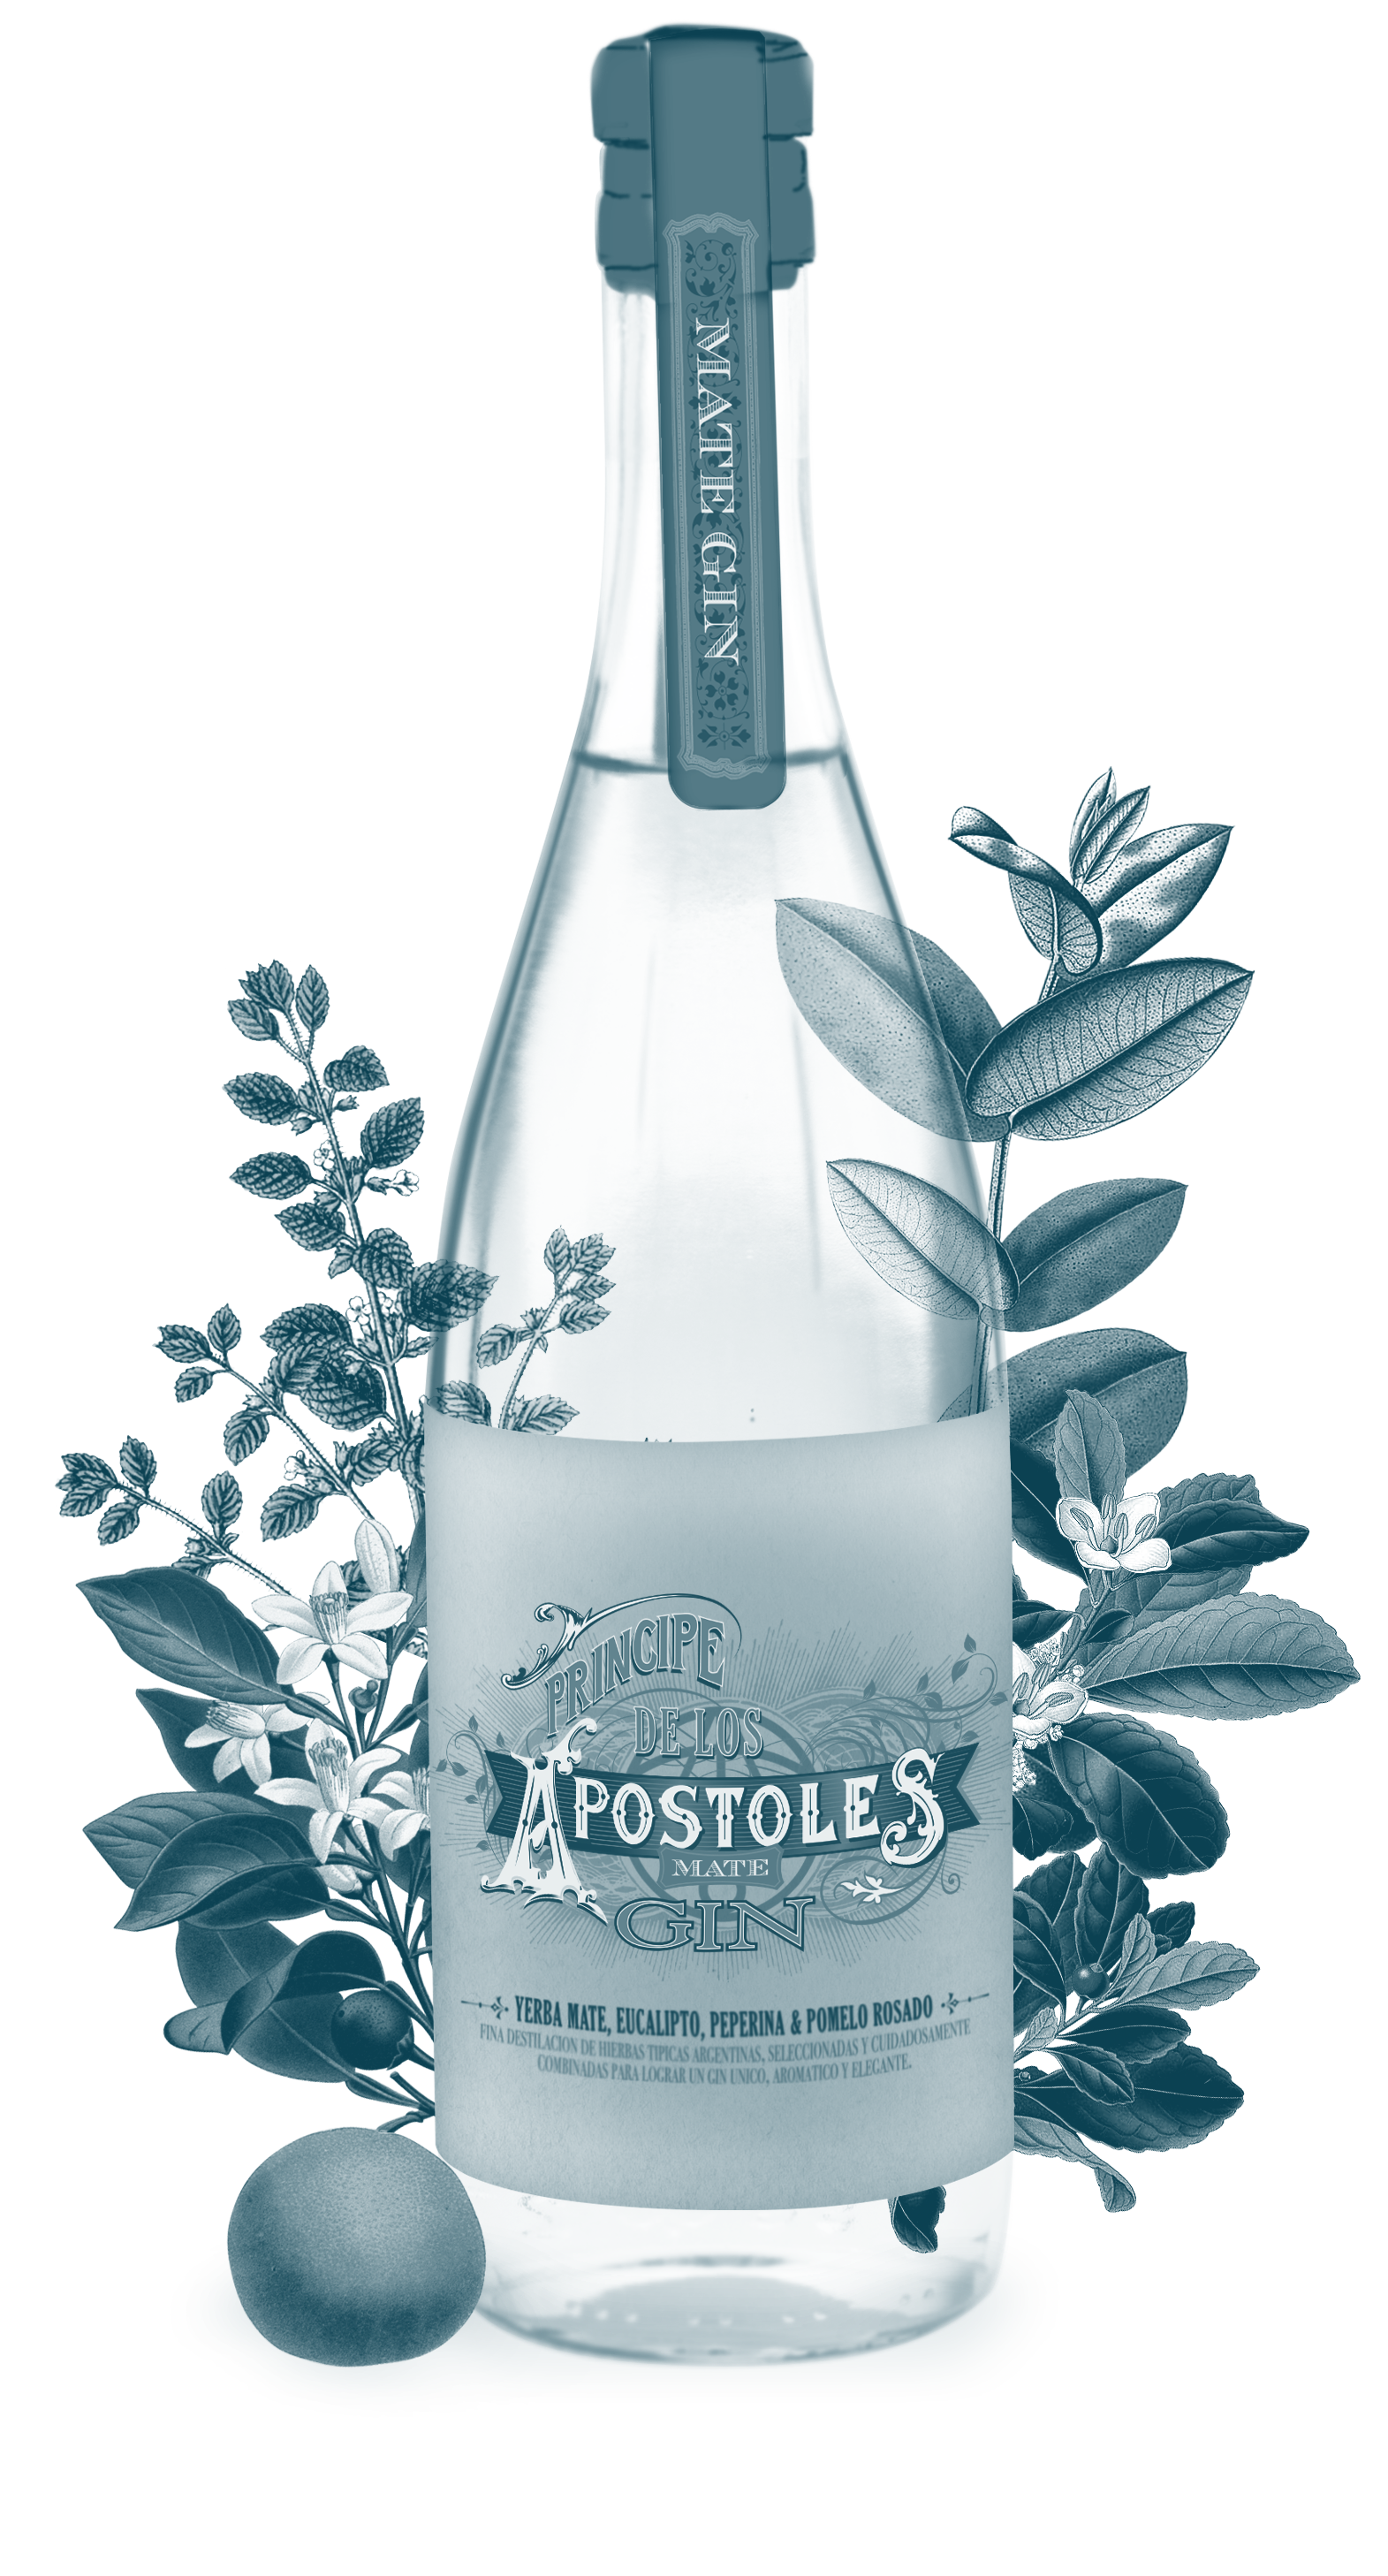 apostoles-gin.png